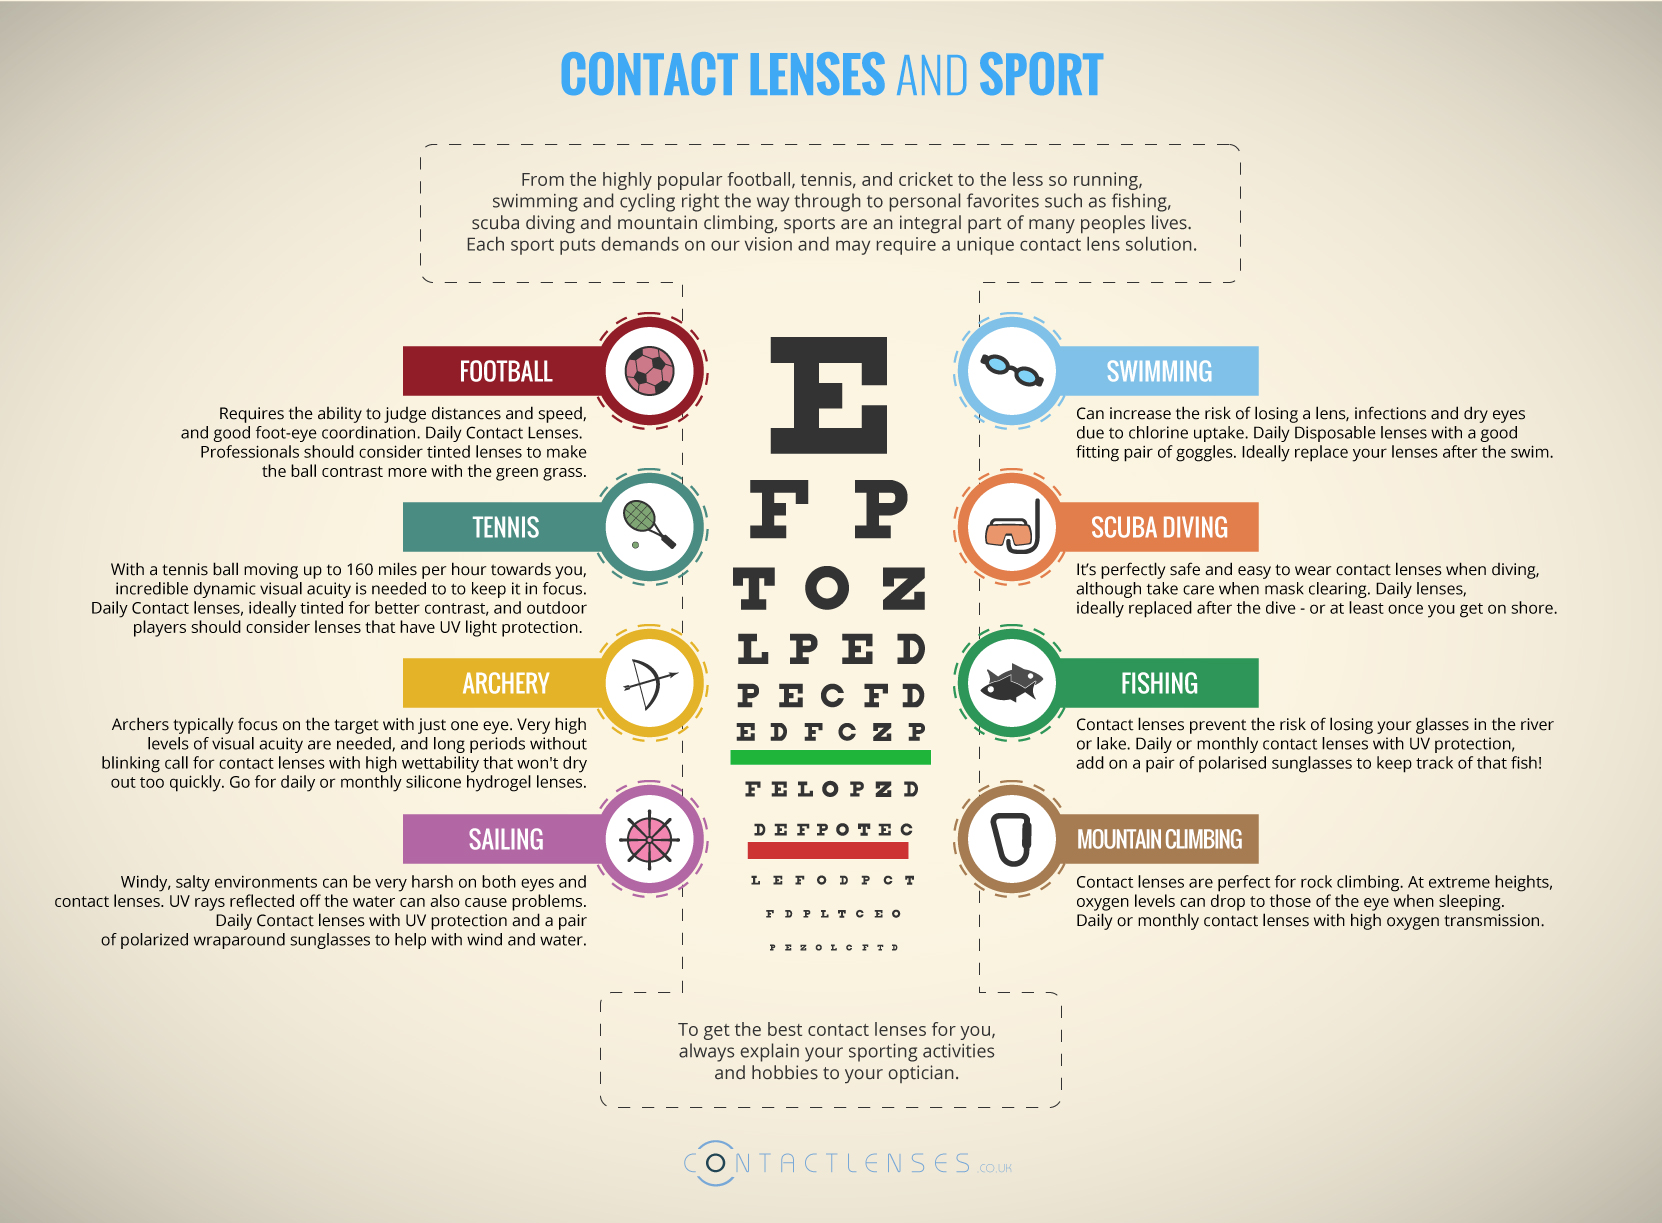 Contact Lenses and Sport